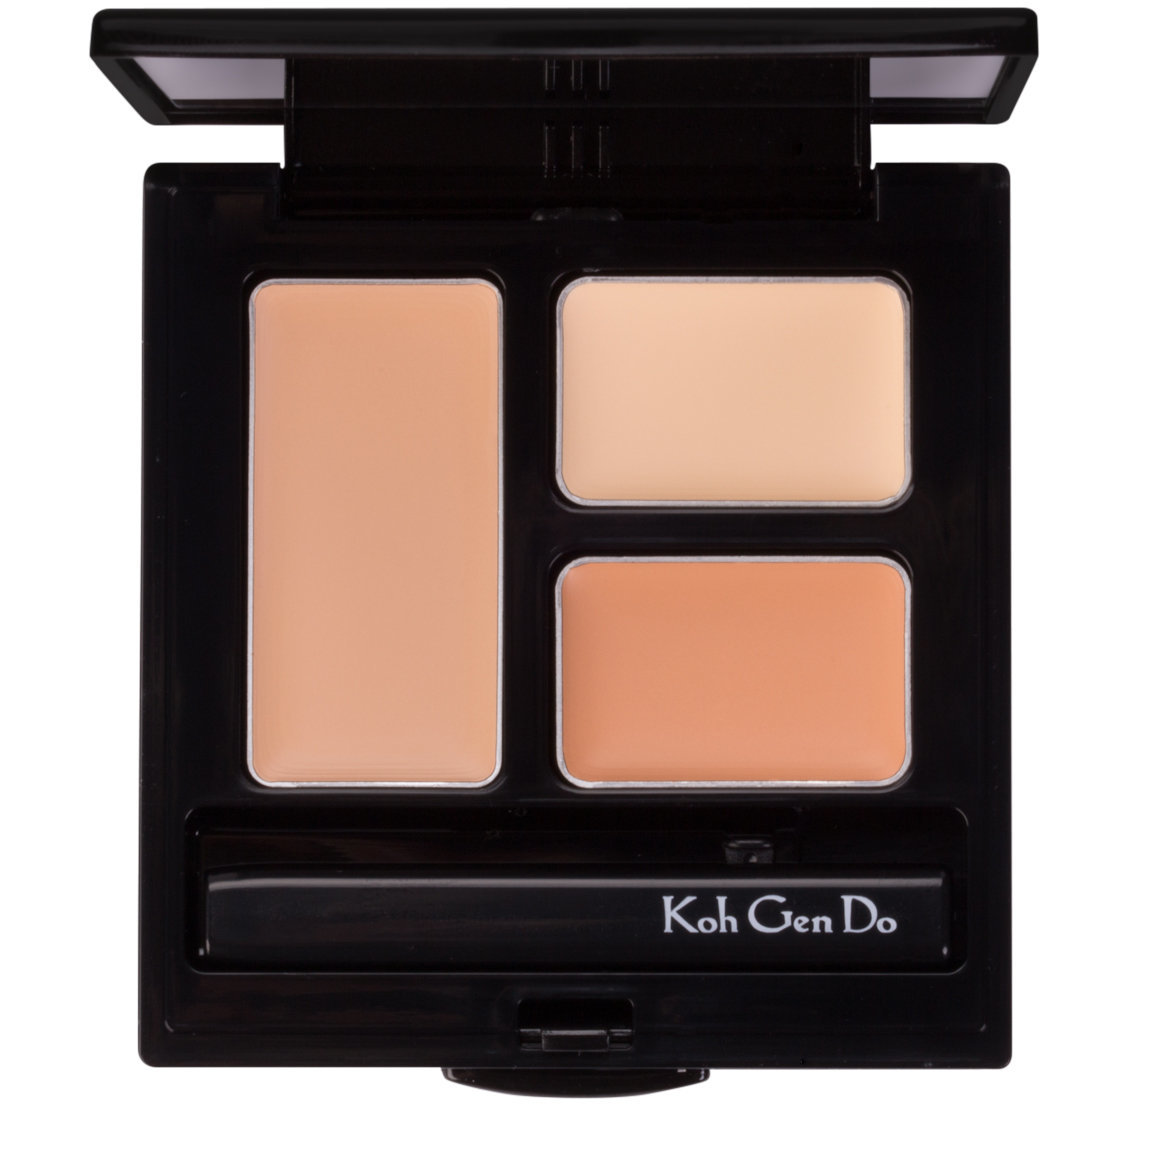 Koh Gen Do Moisture Concealer alternative view 1 - product swatch.